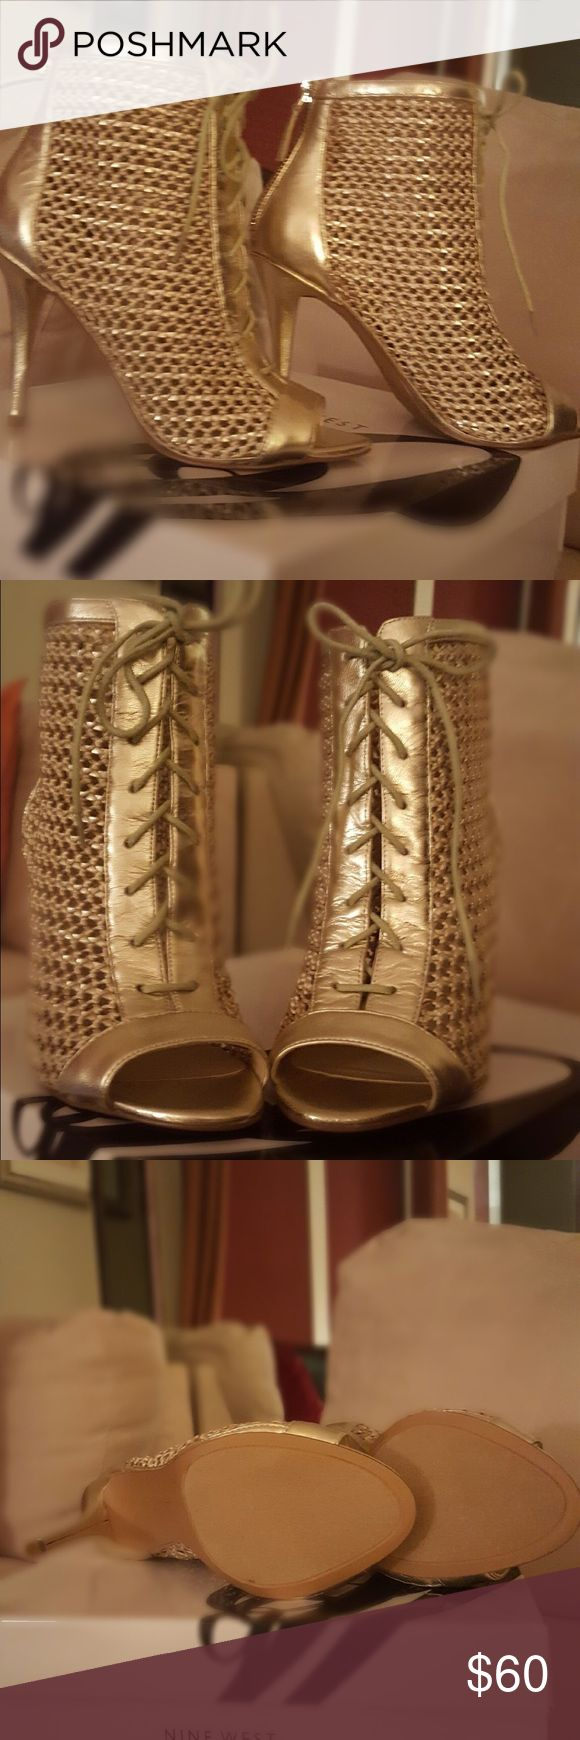 Nine West Booties Lace up these Nine West Daiquiri booties. They are a size 7, gold, open toe booties. $60.00 dollars, I purchased them for $80.00. They have NEVER been worn! Nine West Shoes Heels